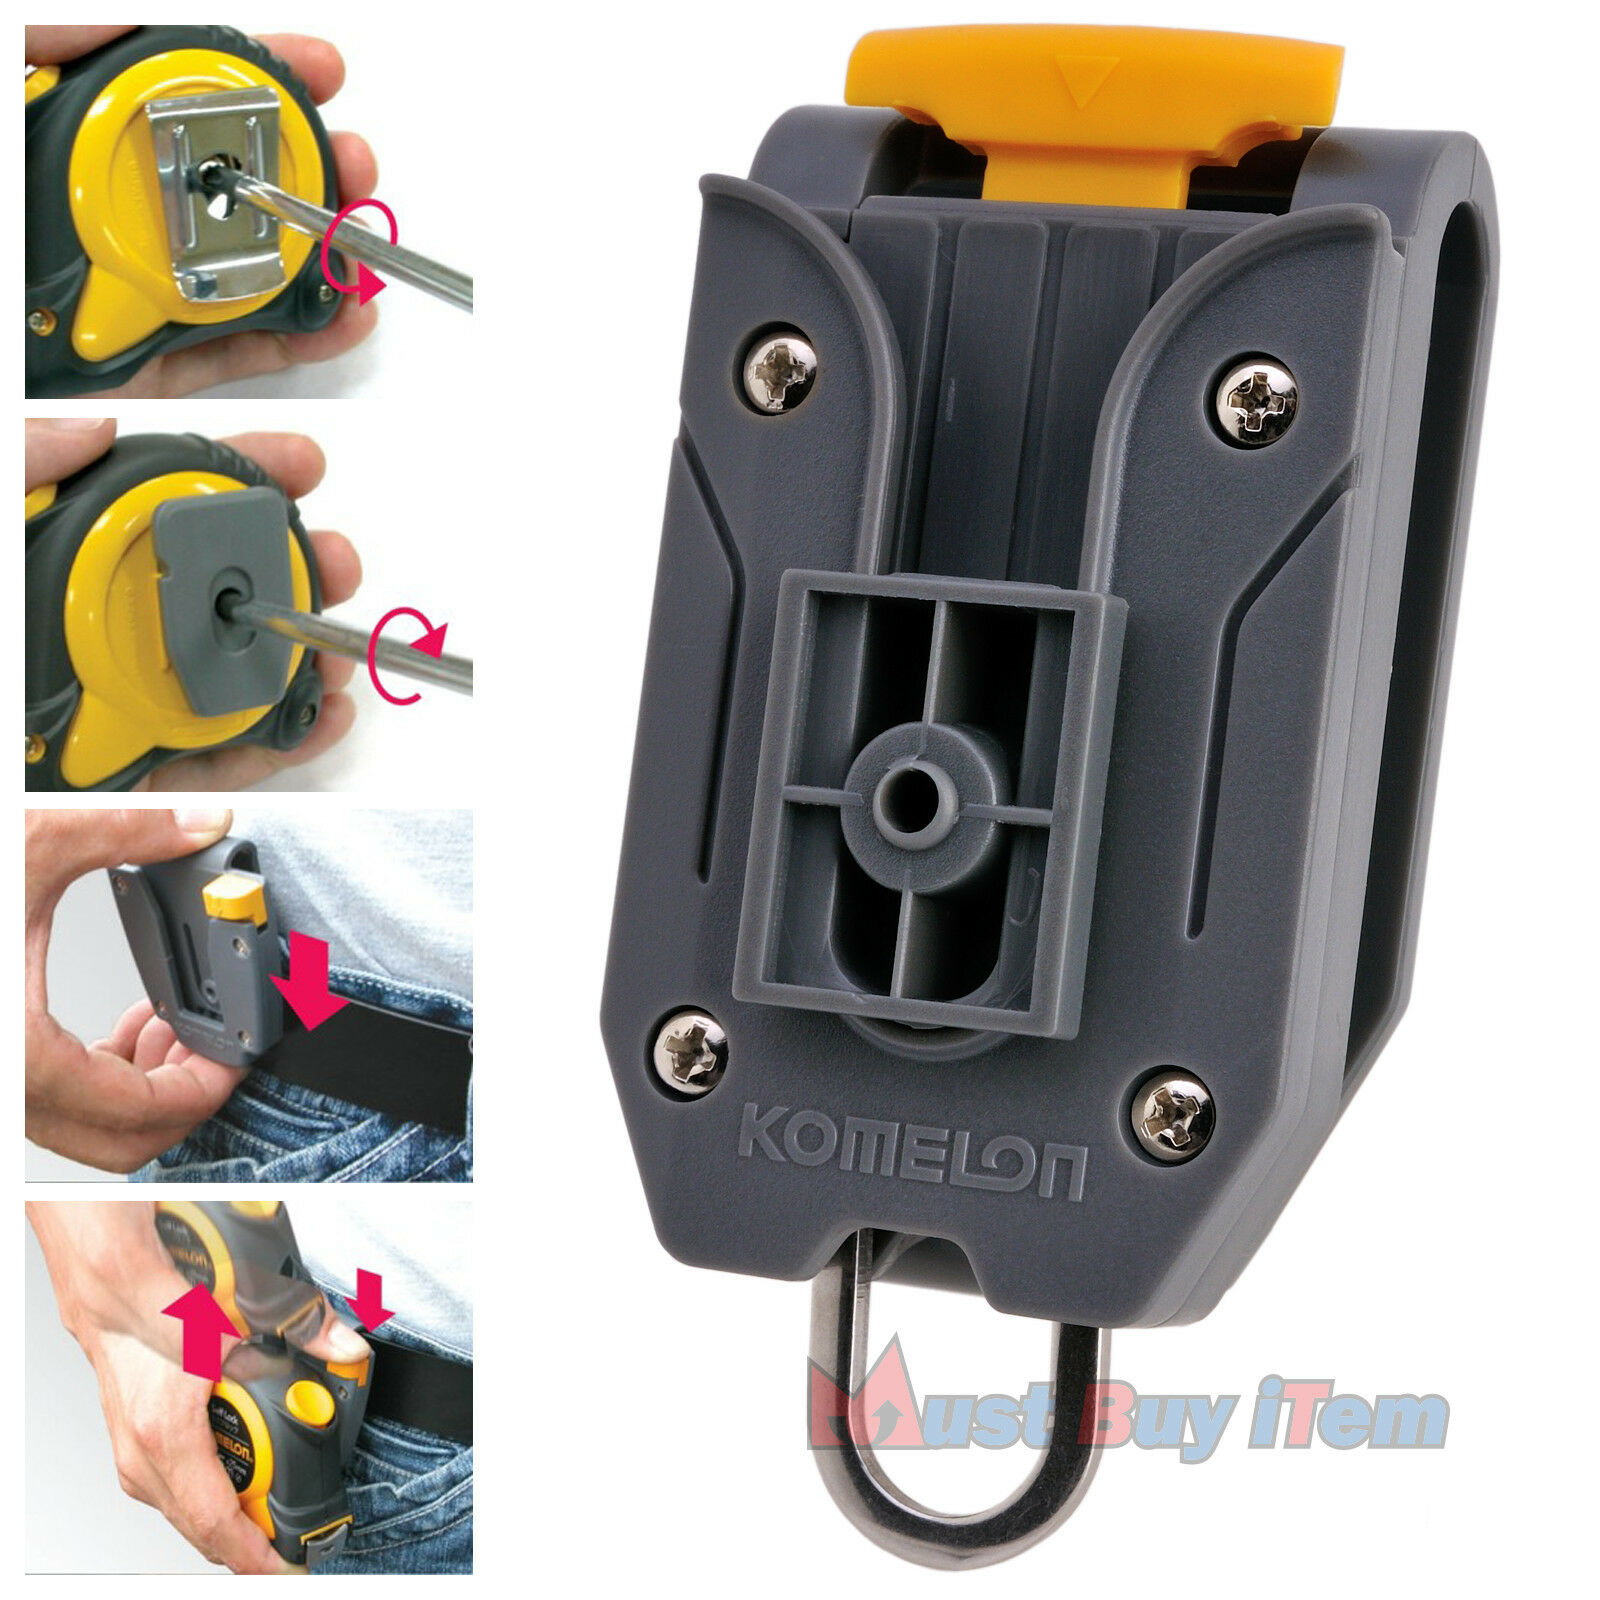 Wholesale 20 Komelon Komelon Komelon Measuring Tape Waist Belt Clip Holder with Tool Hanger Ring d2ff52